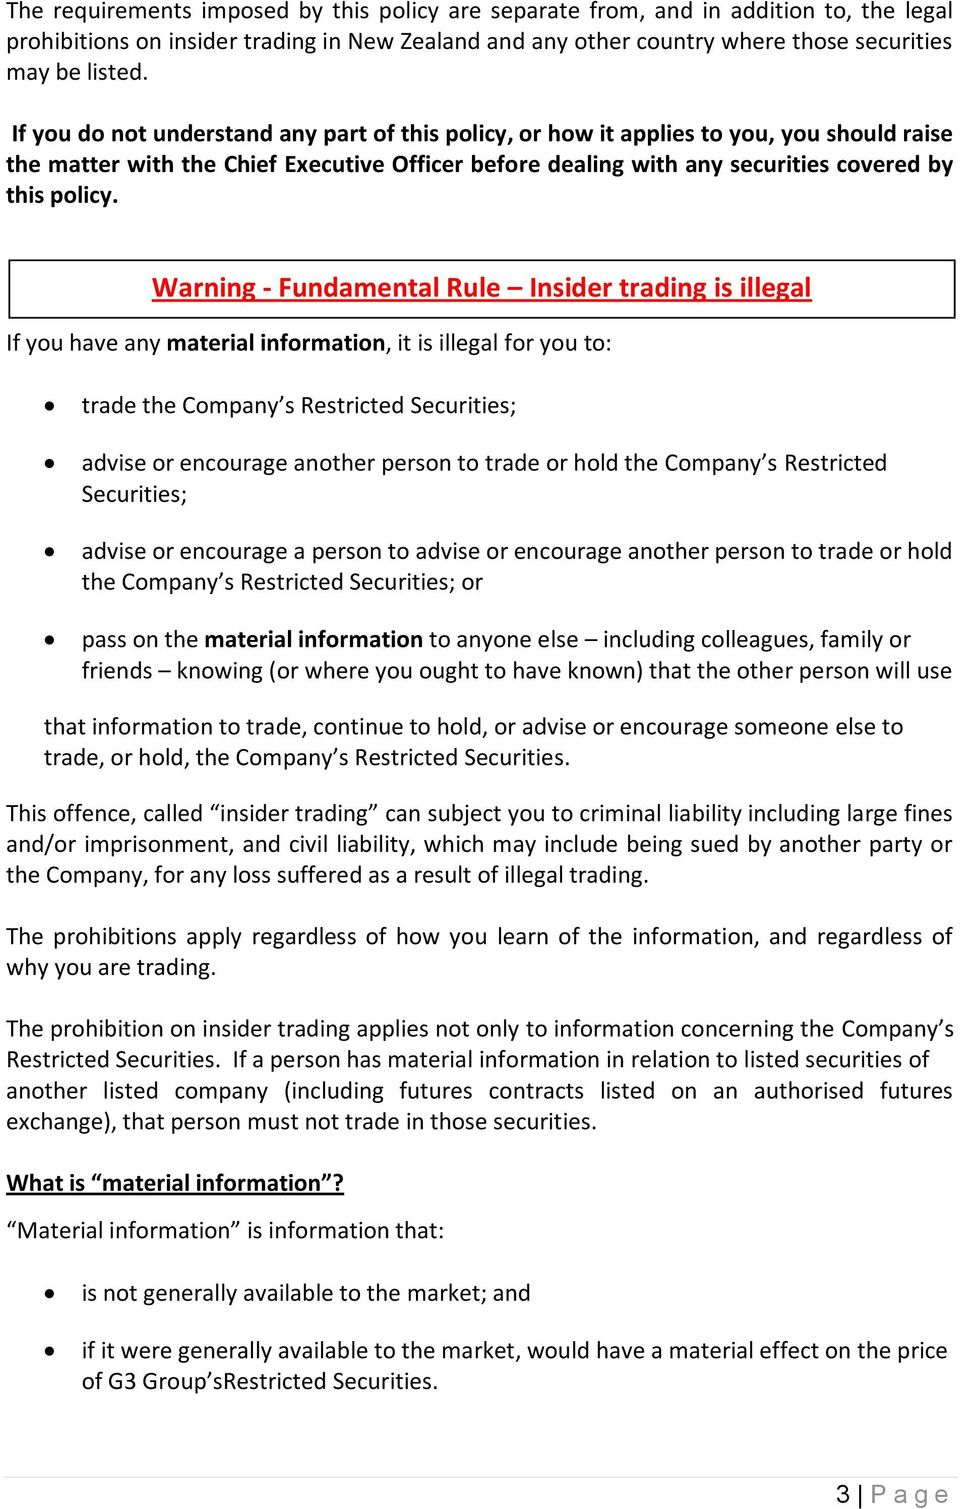 Warning - Fundamental Rule Insider trading is illegal If you have any material information, it is illegal for you to: trade the Company s Restricted Securities; advise or encourage another person to